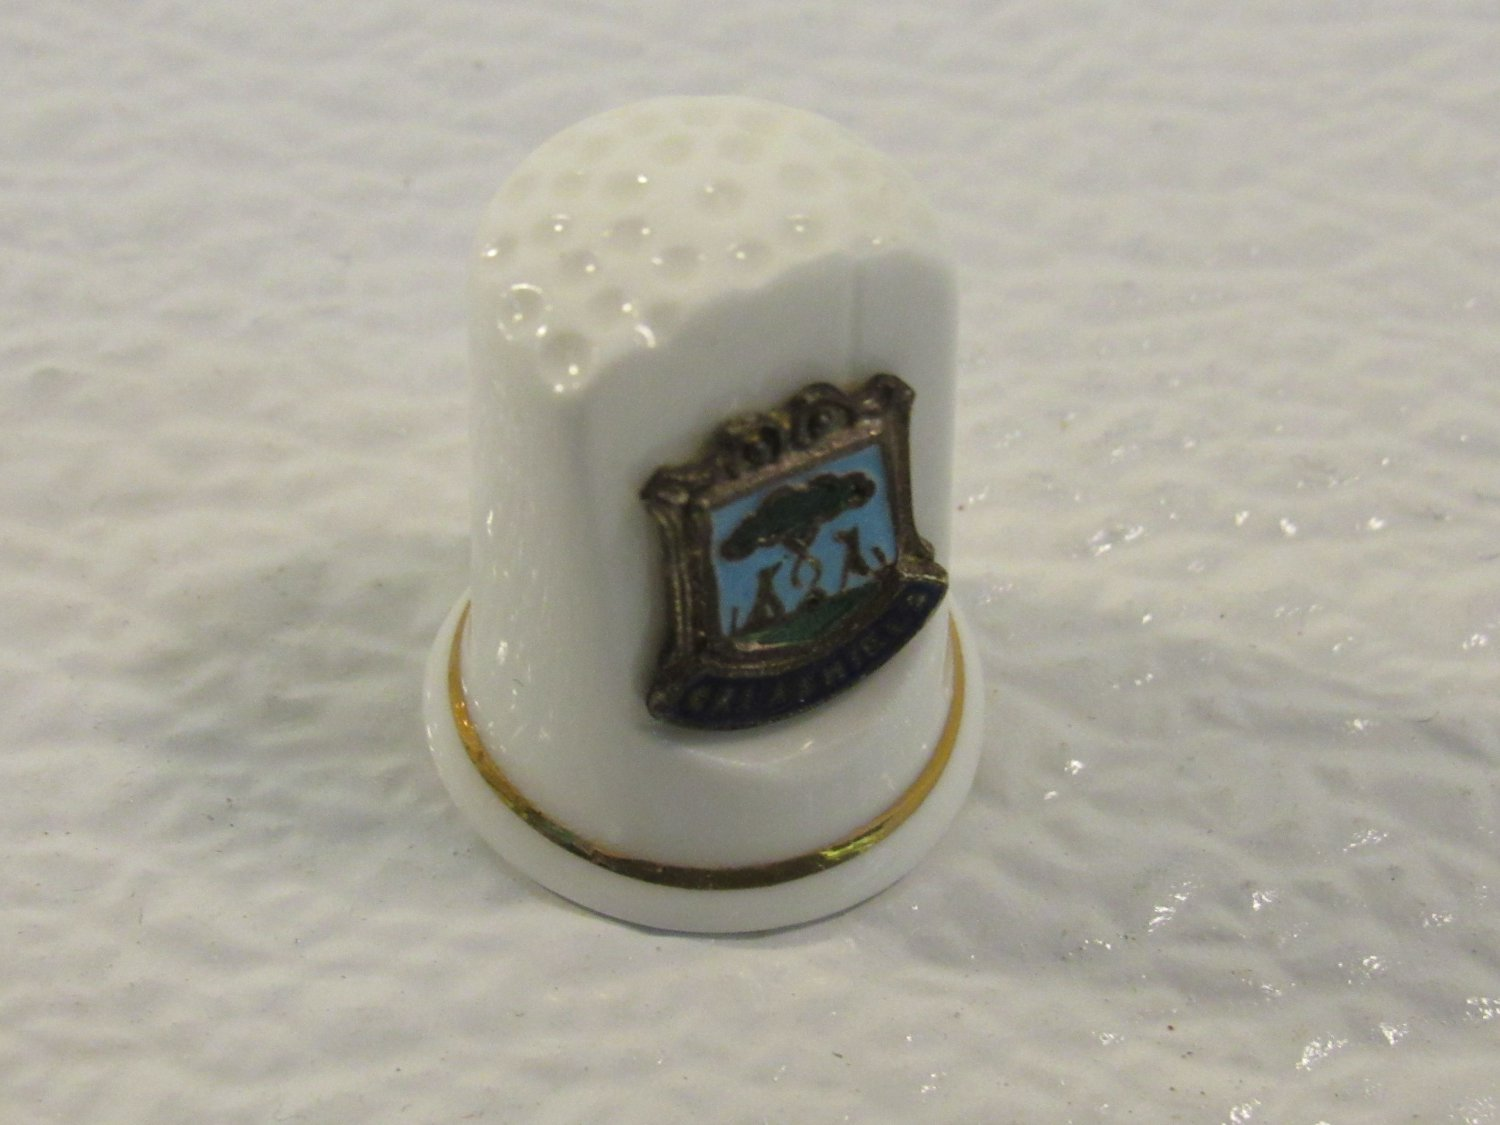 Exquisite Decorative Thimble Galashiels 1in x 1in White Vintage Fine Bone China